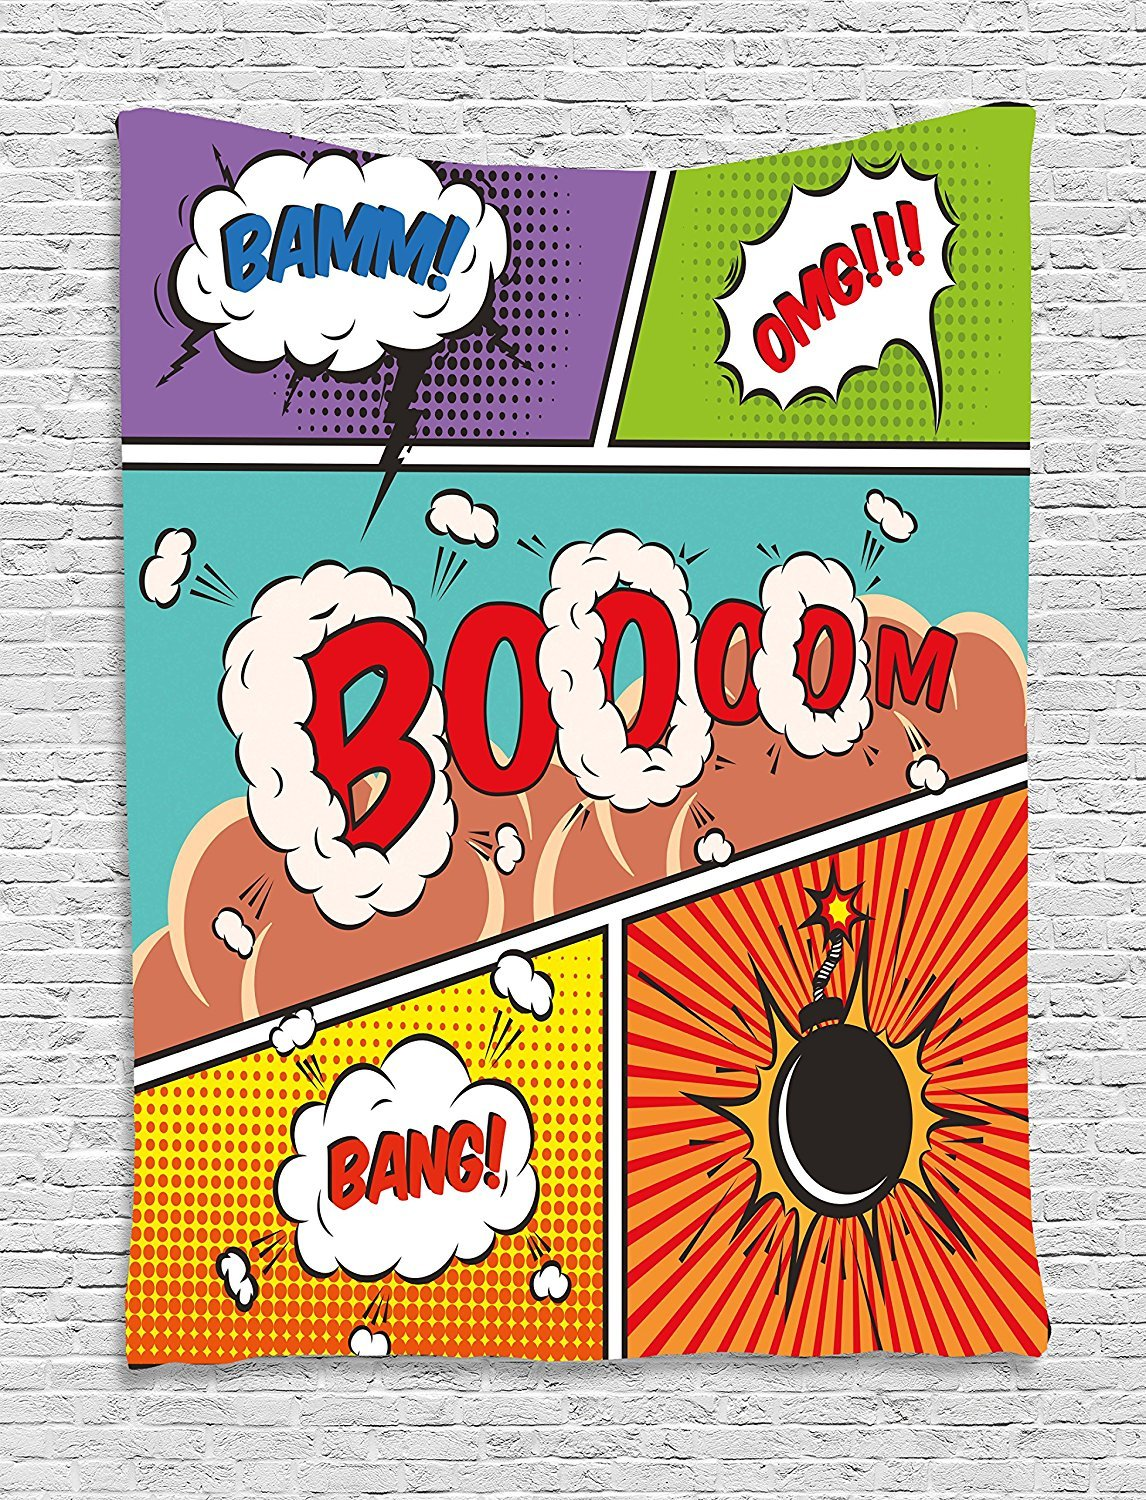 Superhero Tapestry, Retro Comic Strip Speech Bubbles Funny Pop Art Stylized Vintage Hobby Style Image, Wall Hanging for Bedroom Living Room Dorm, 60 W X 80 L Inches, Multicolor